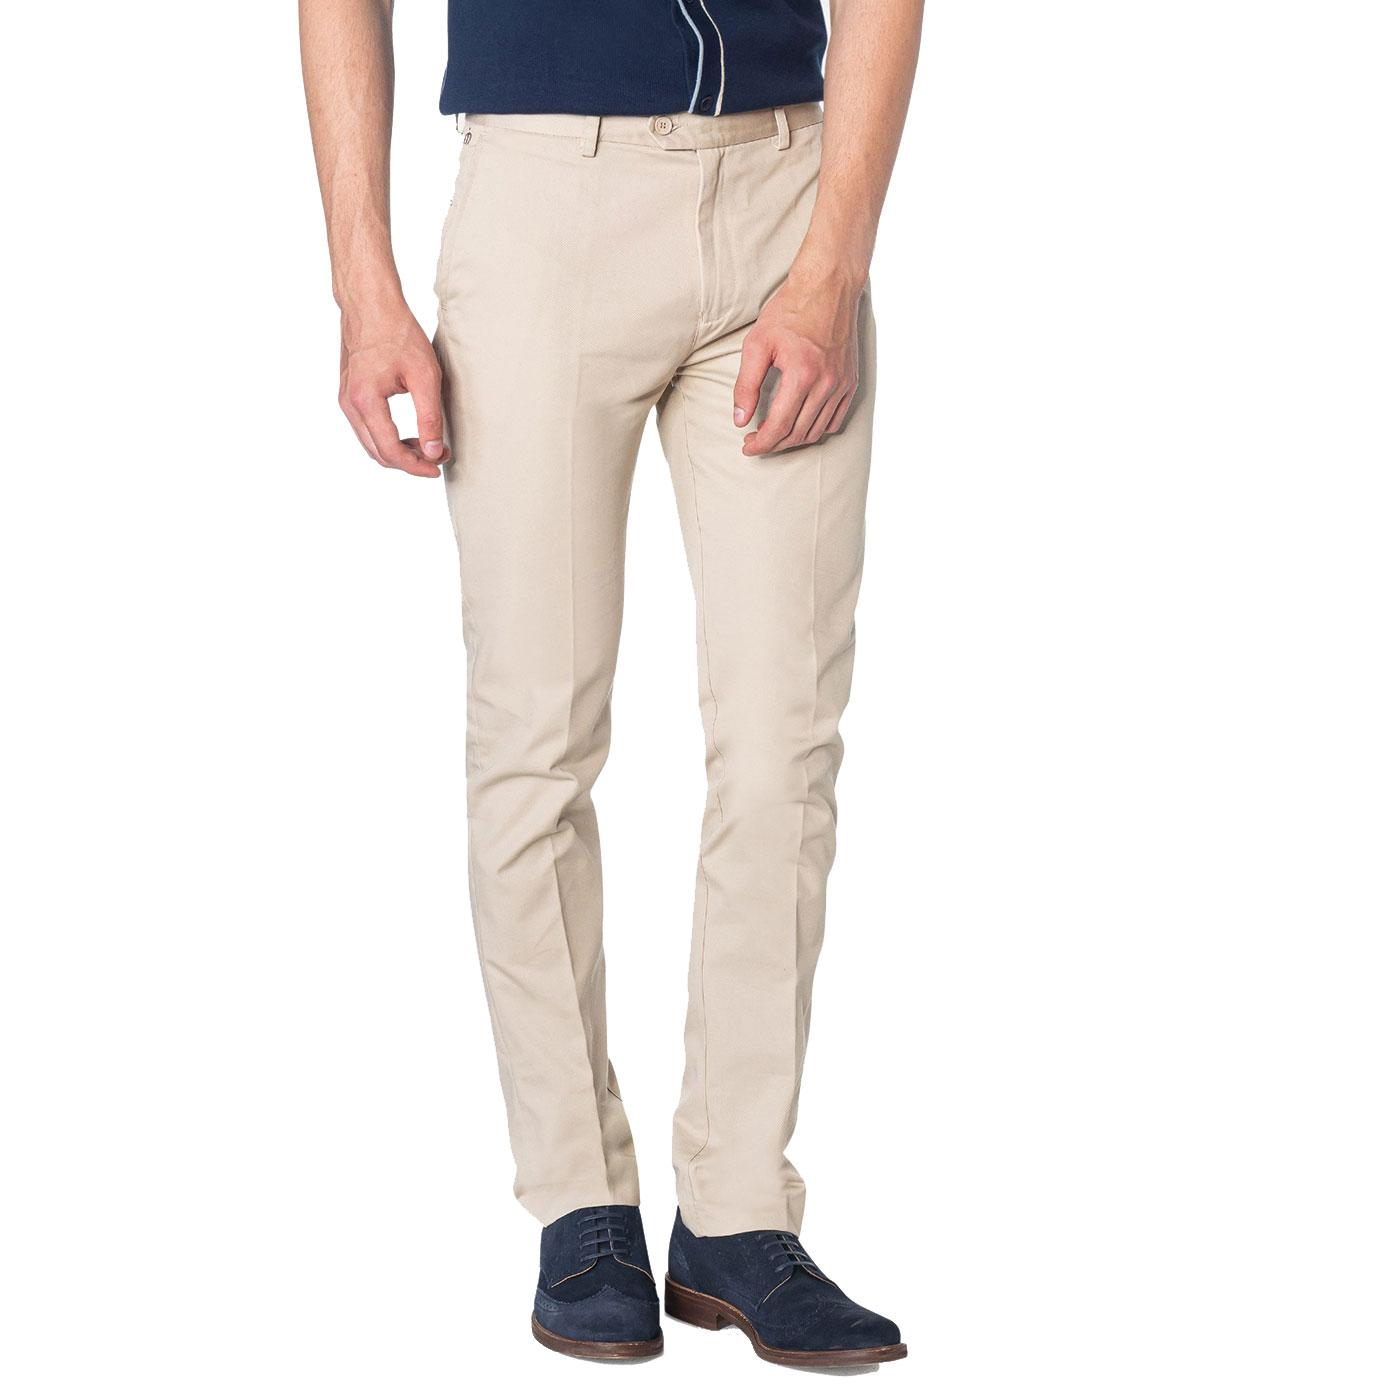 Winston MERC Men's Mod Sta Press Trousers BEIGE